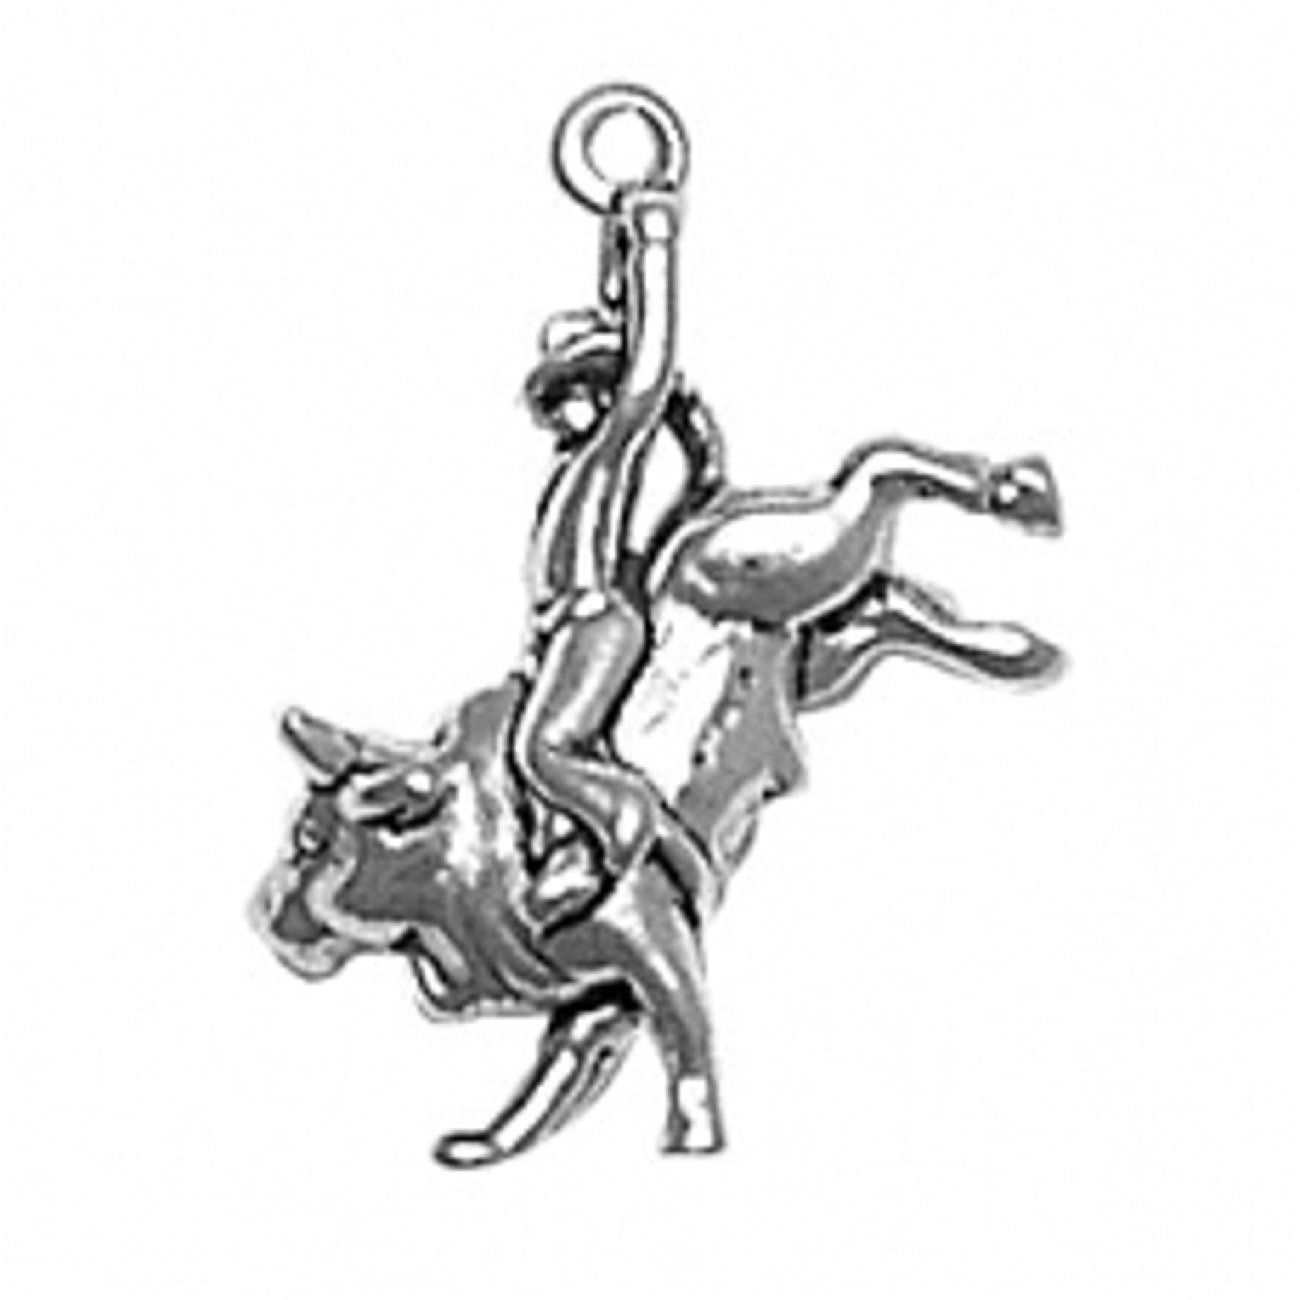 Sterling Silver 3D Rodeo Cowboy Bull Rider Charm Arm Raised And Bucking Bull Horns